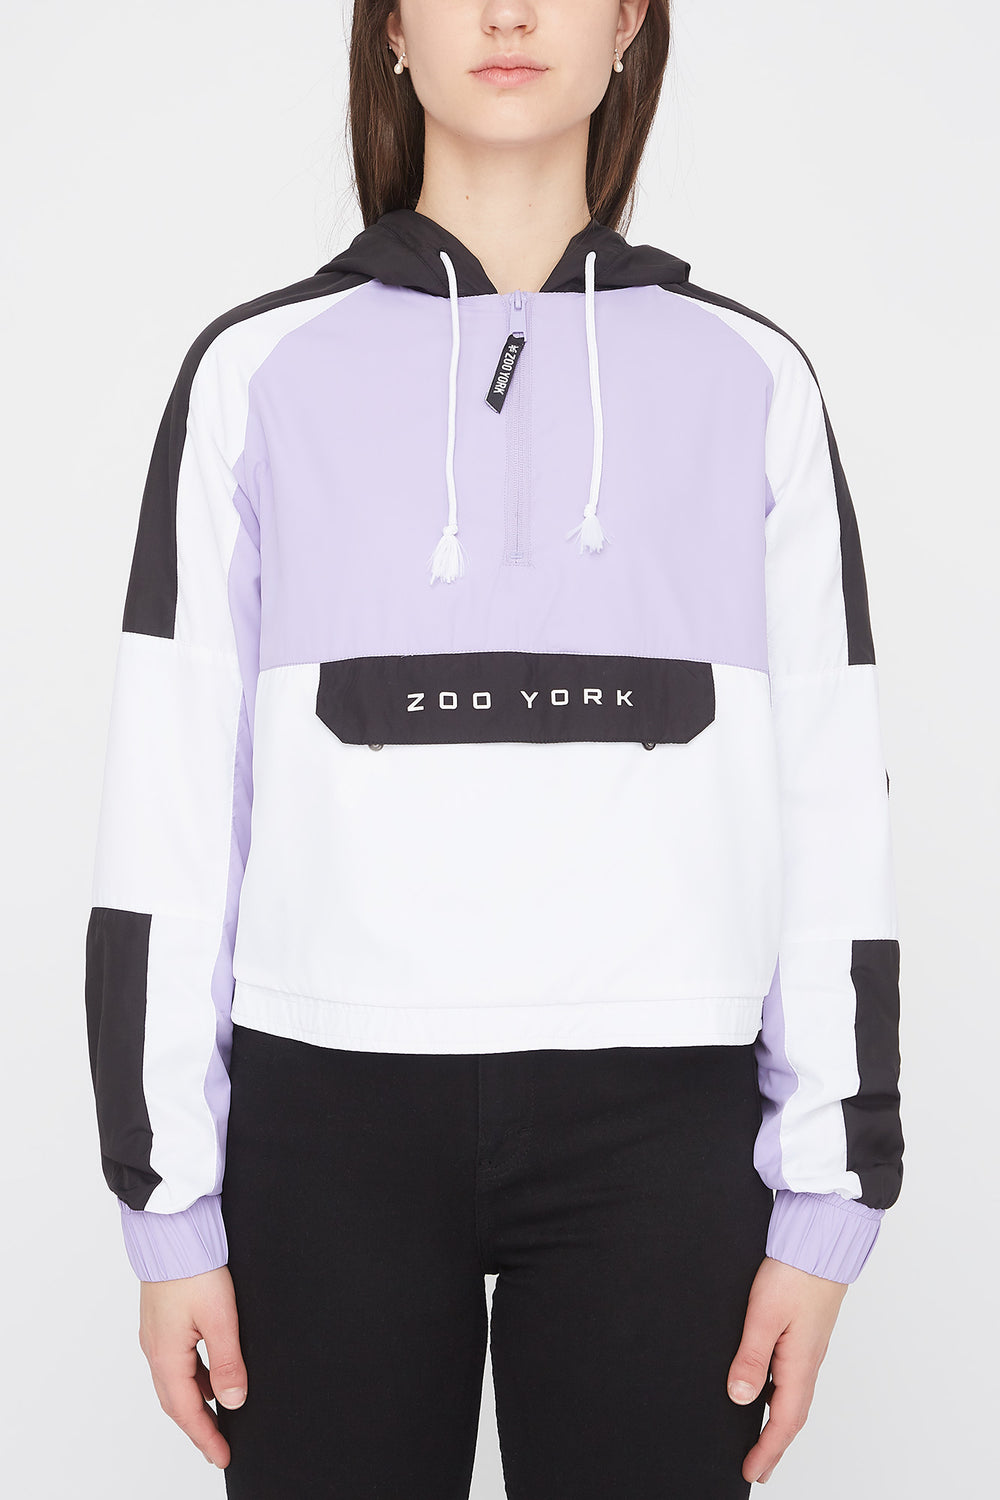 Zoo York Womens Cropped Colour Block Jacket Lilac